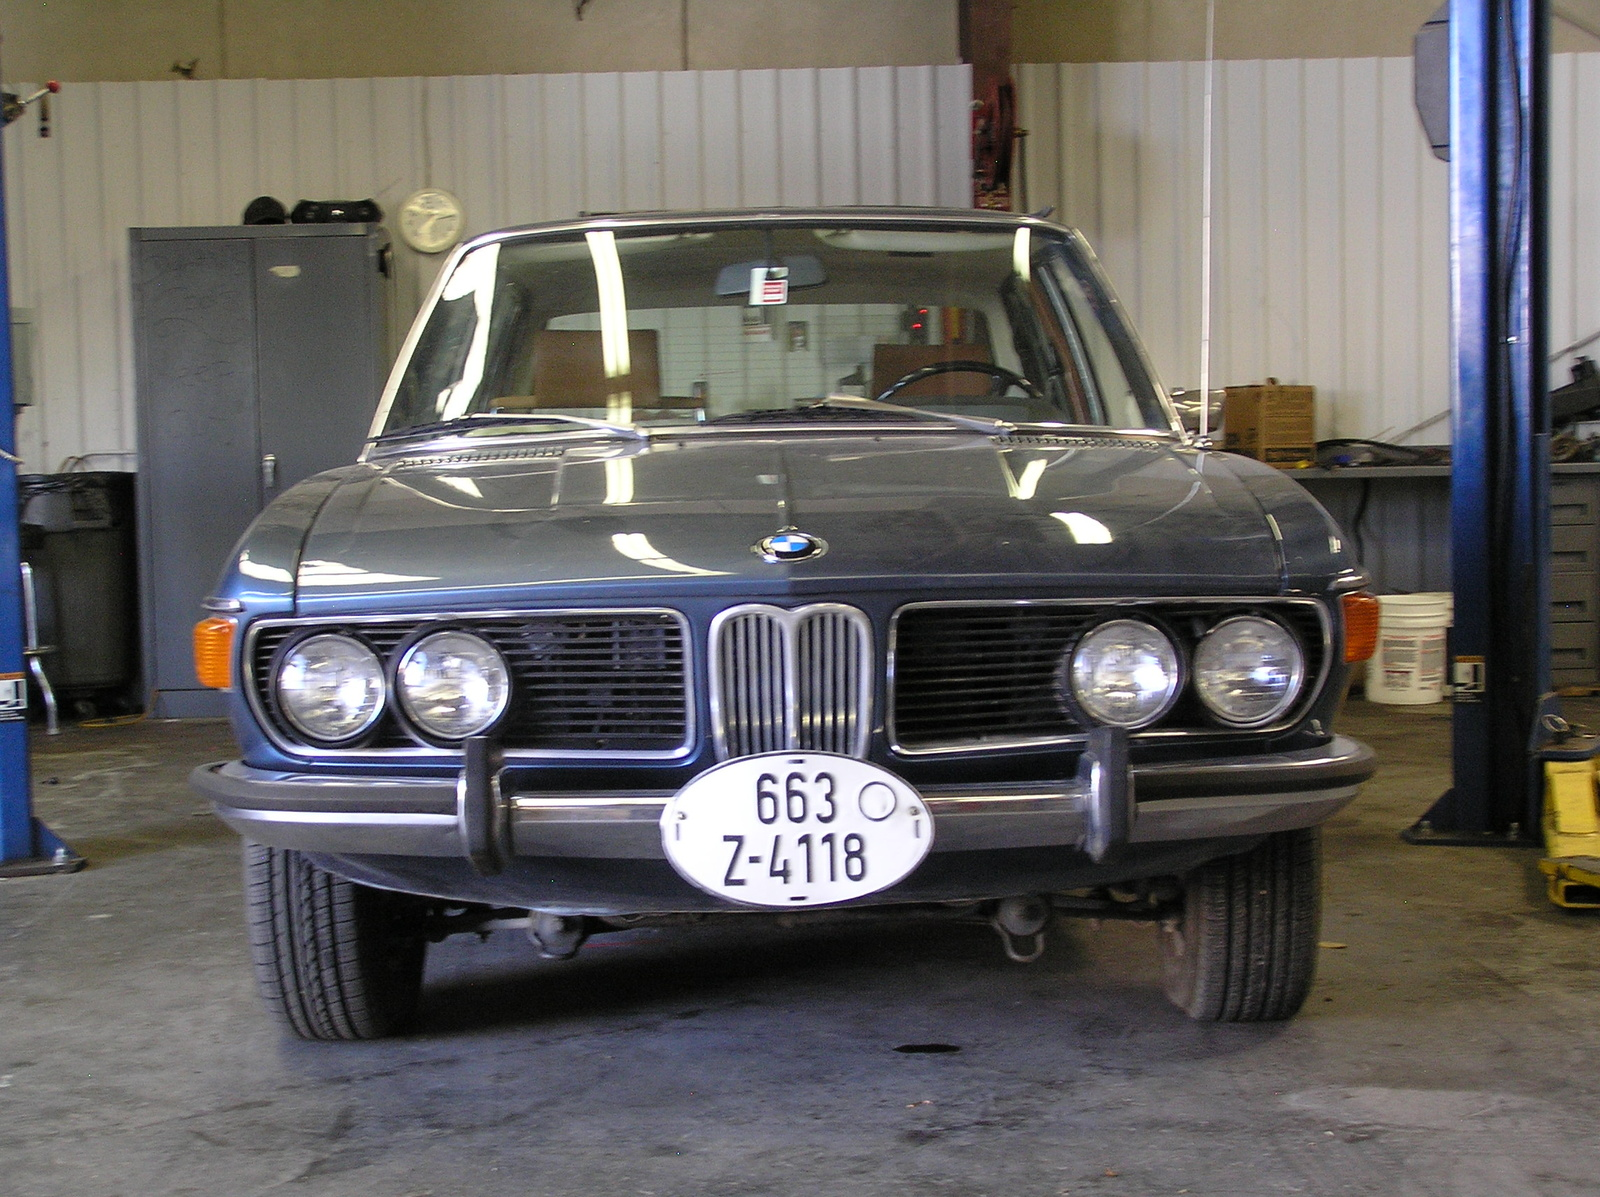 BMW 3 Series Questions - Low oil presure on a M42 318I engine - CarGurus